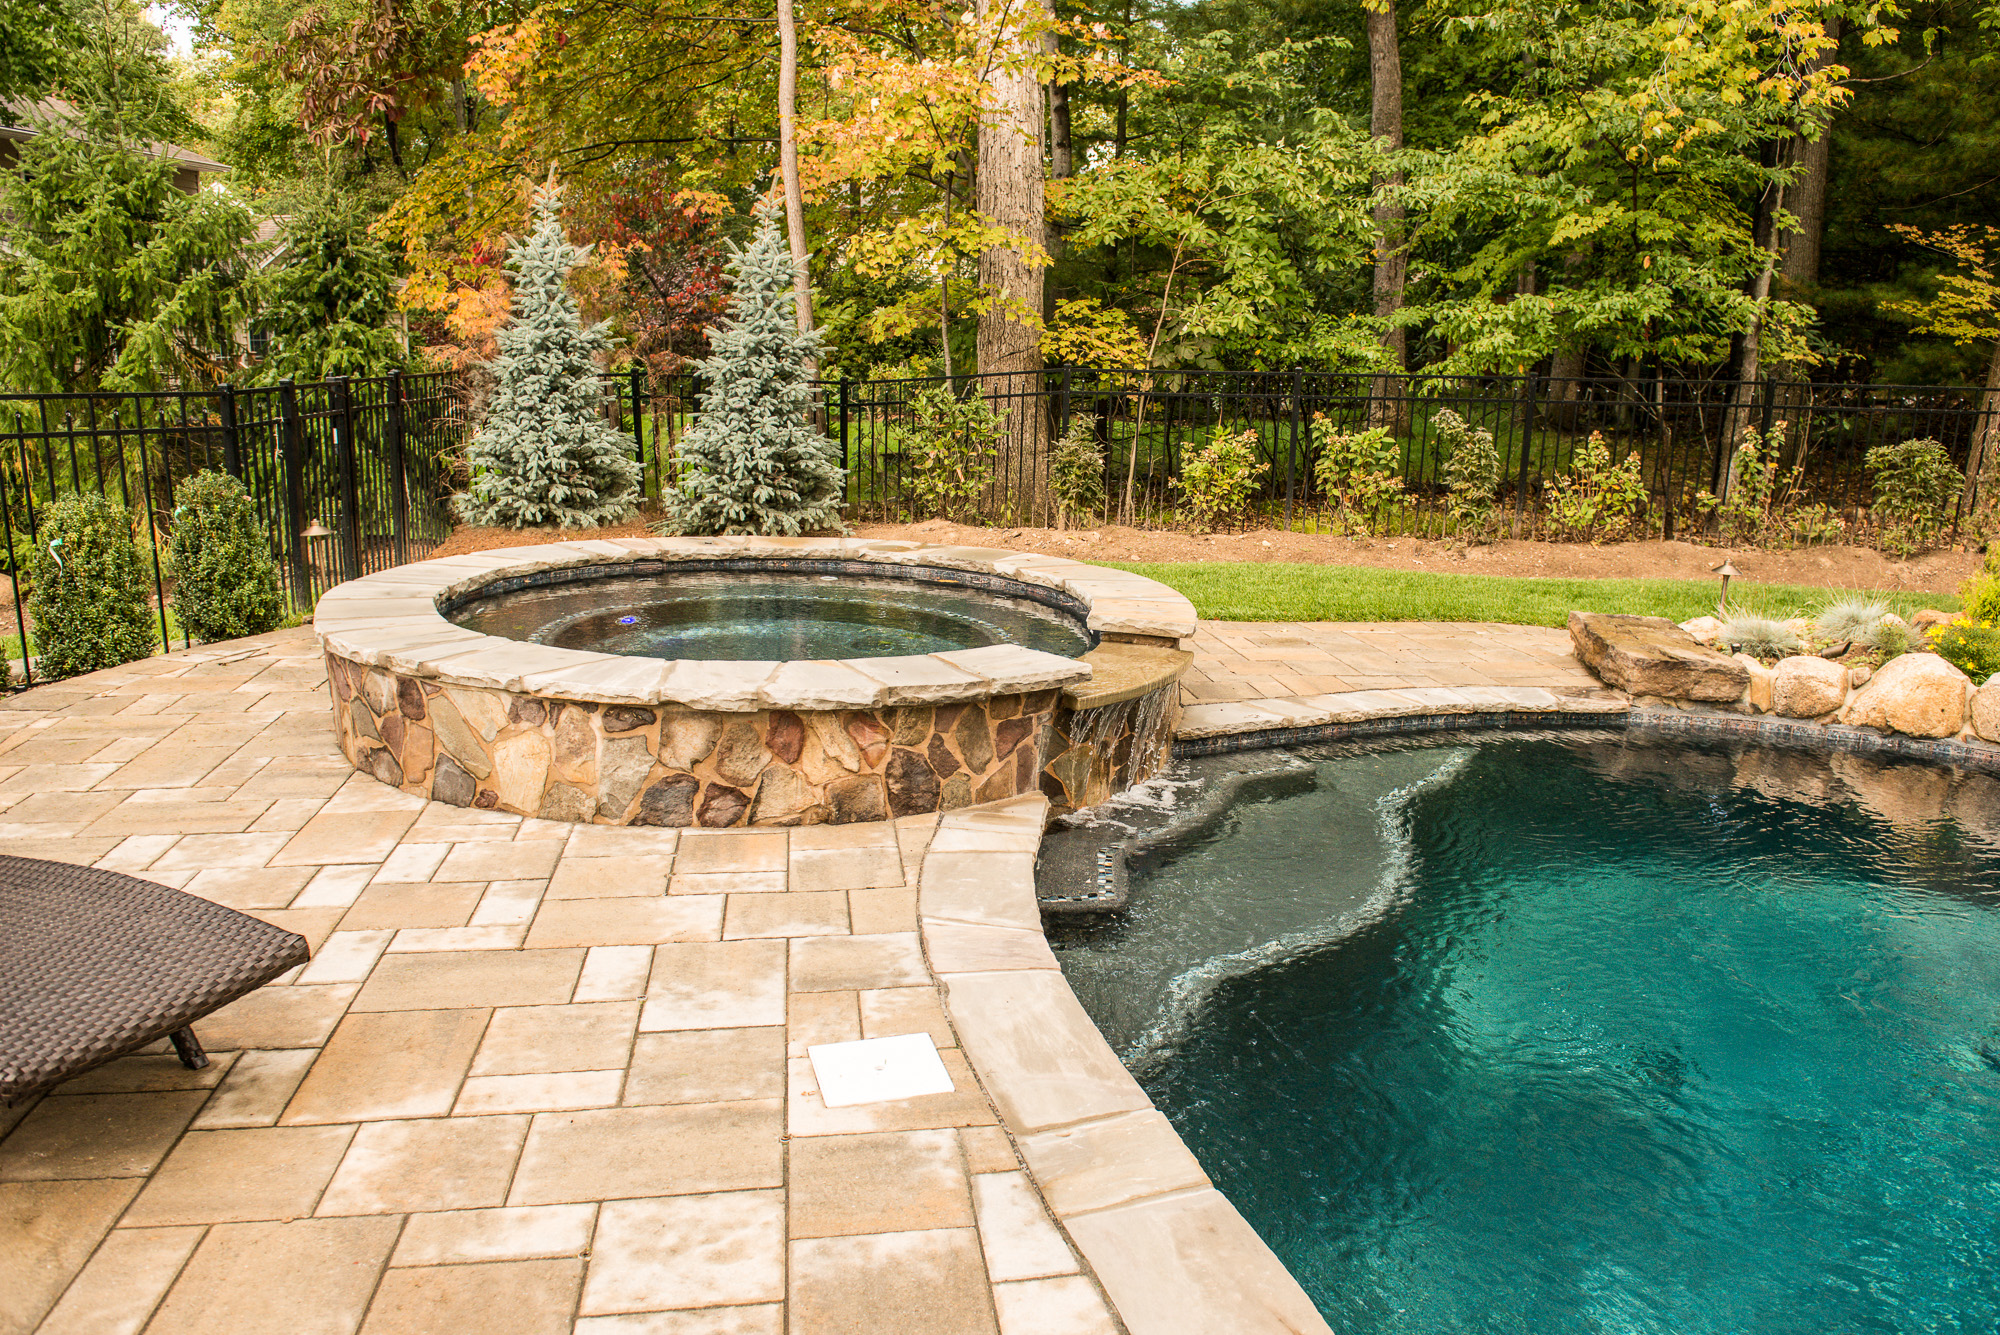 Rivervale nj custom inground swimming pool design for Pool design new jersey